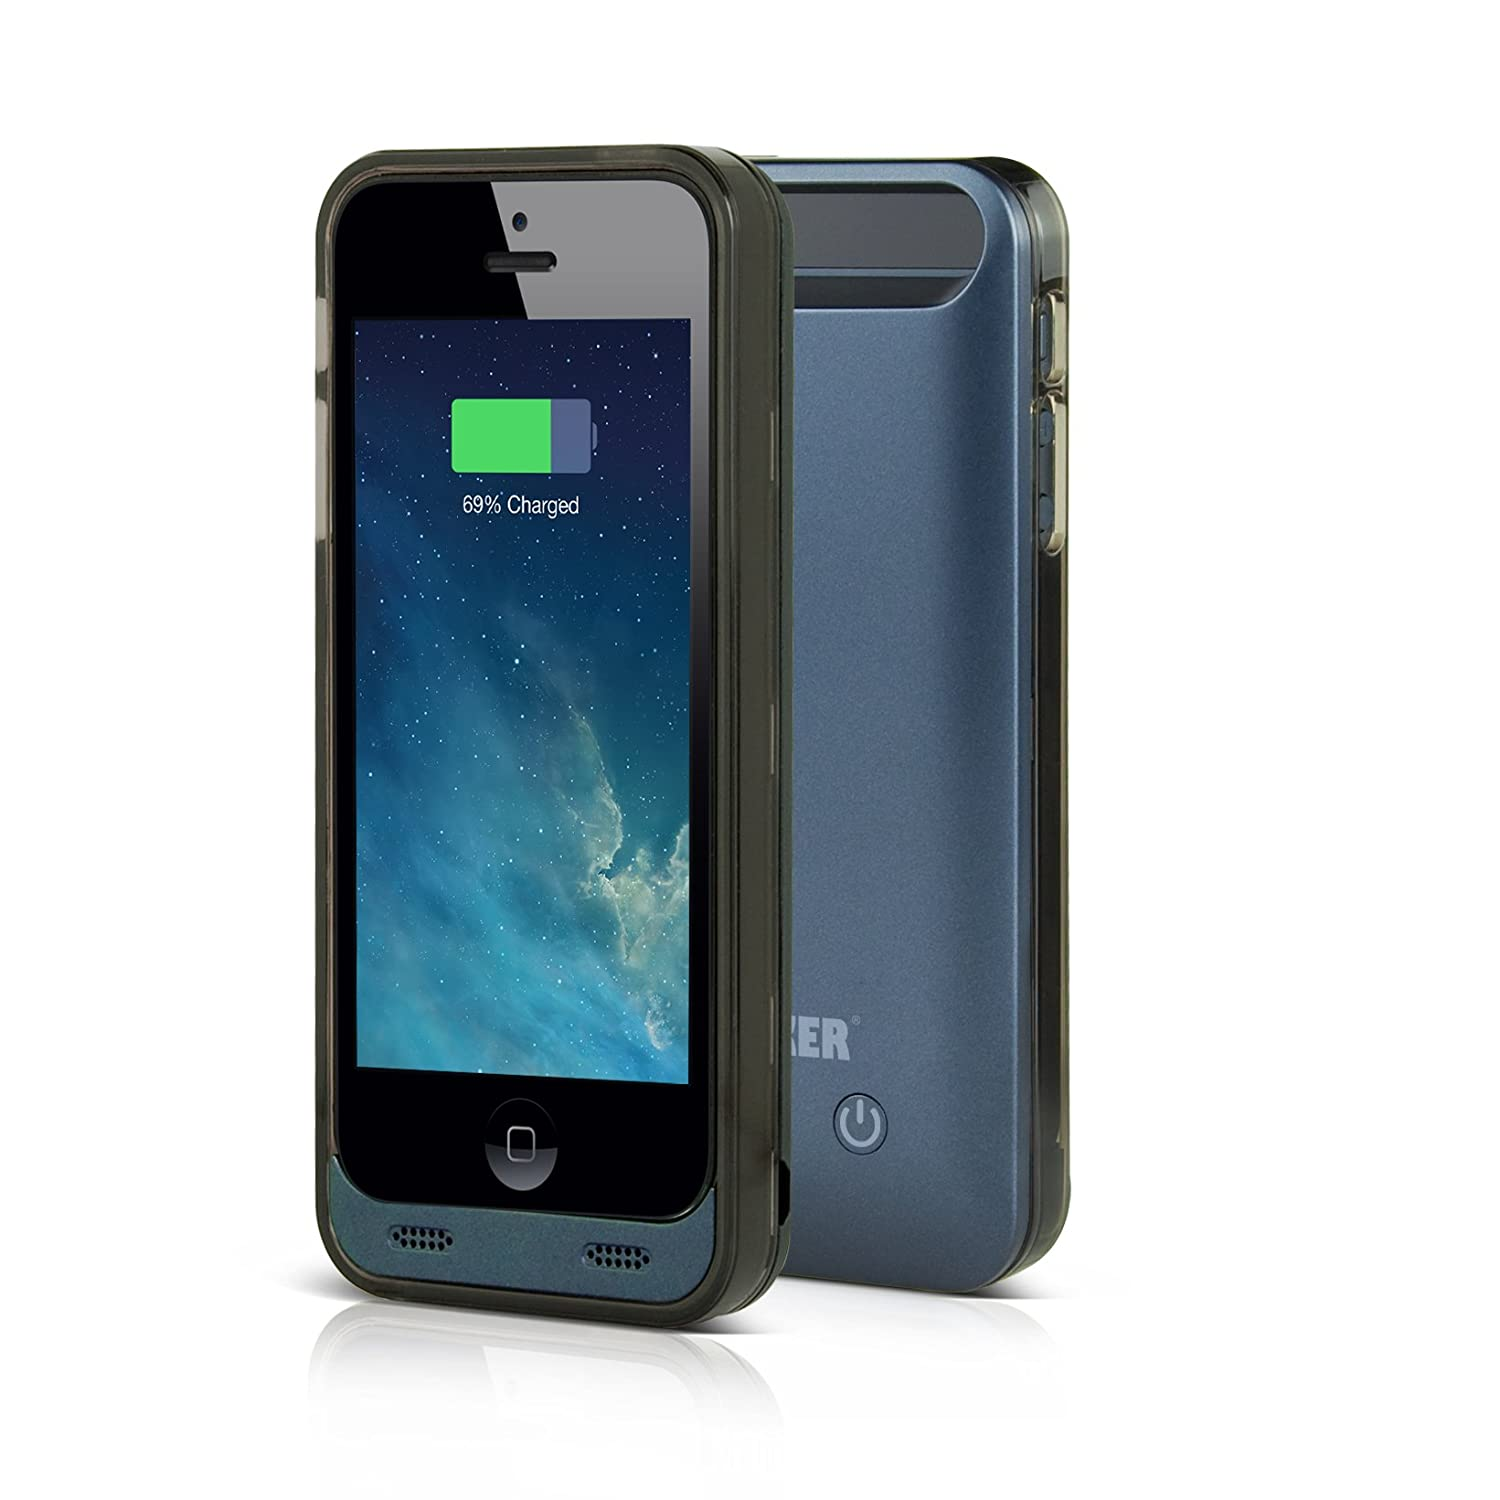 Apple Iphone 5s Charger Case Case For Iphone 5s 5